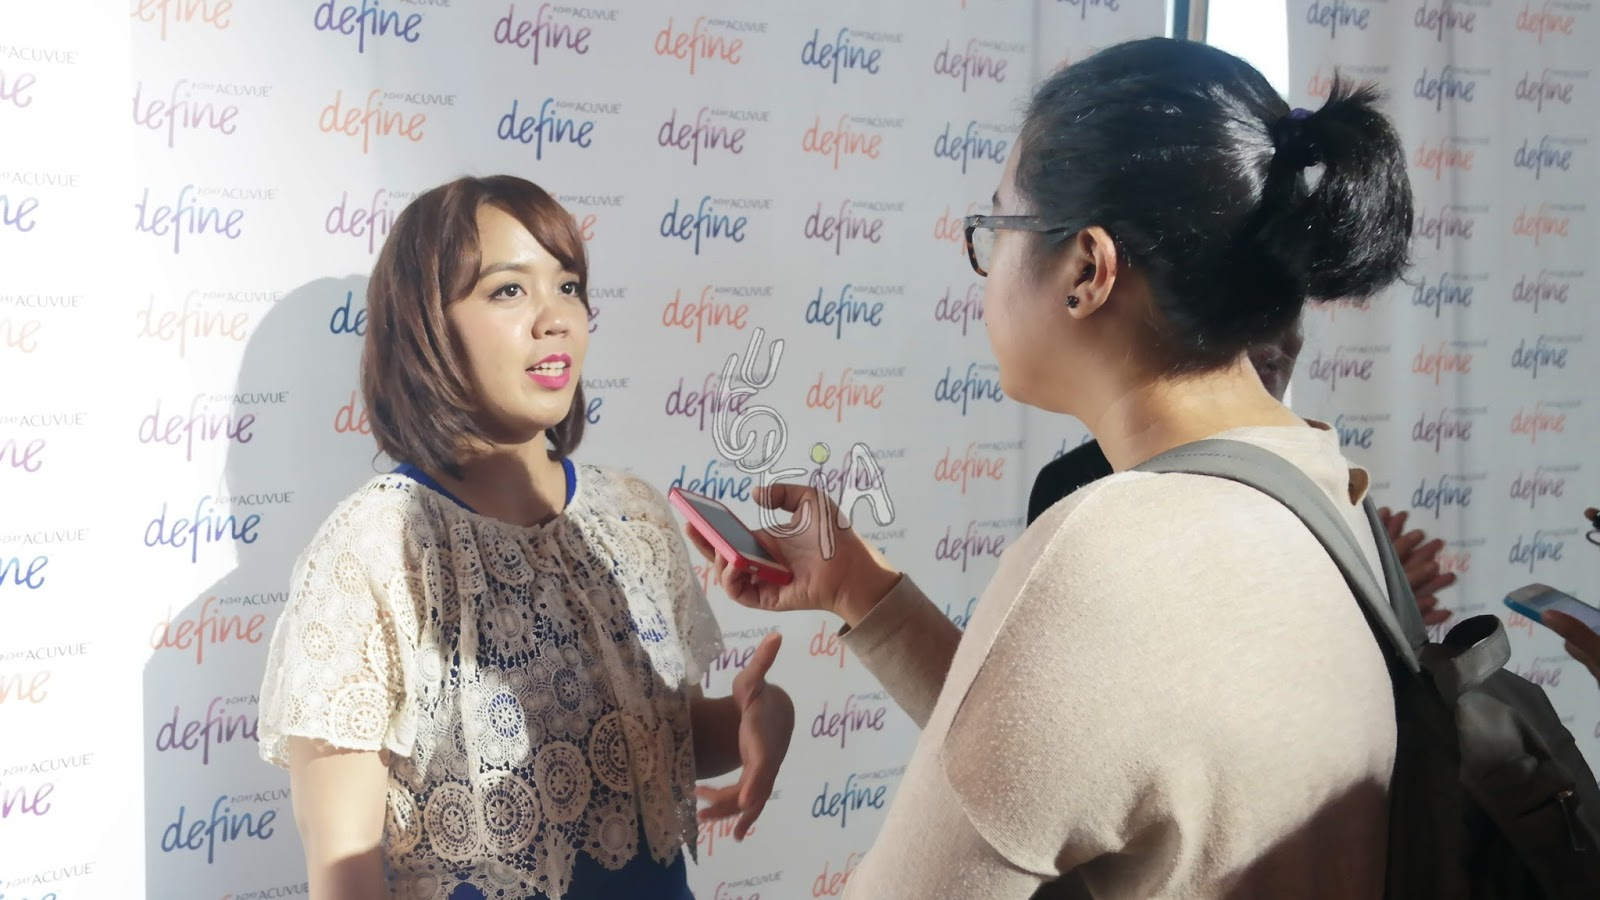 day acuvue reg define media launch beauty blog there are a large selection of other beauty contact lenses at the market making consumers feel confused to choose the appropriate color they wear